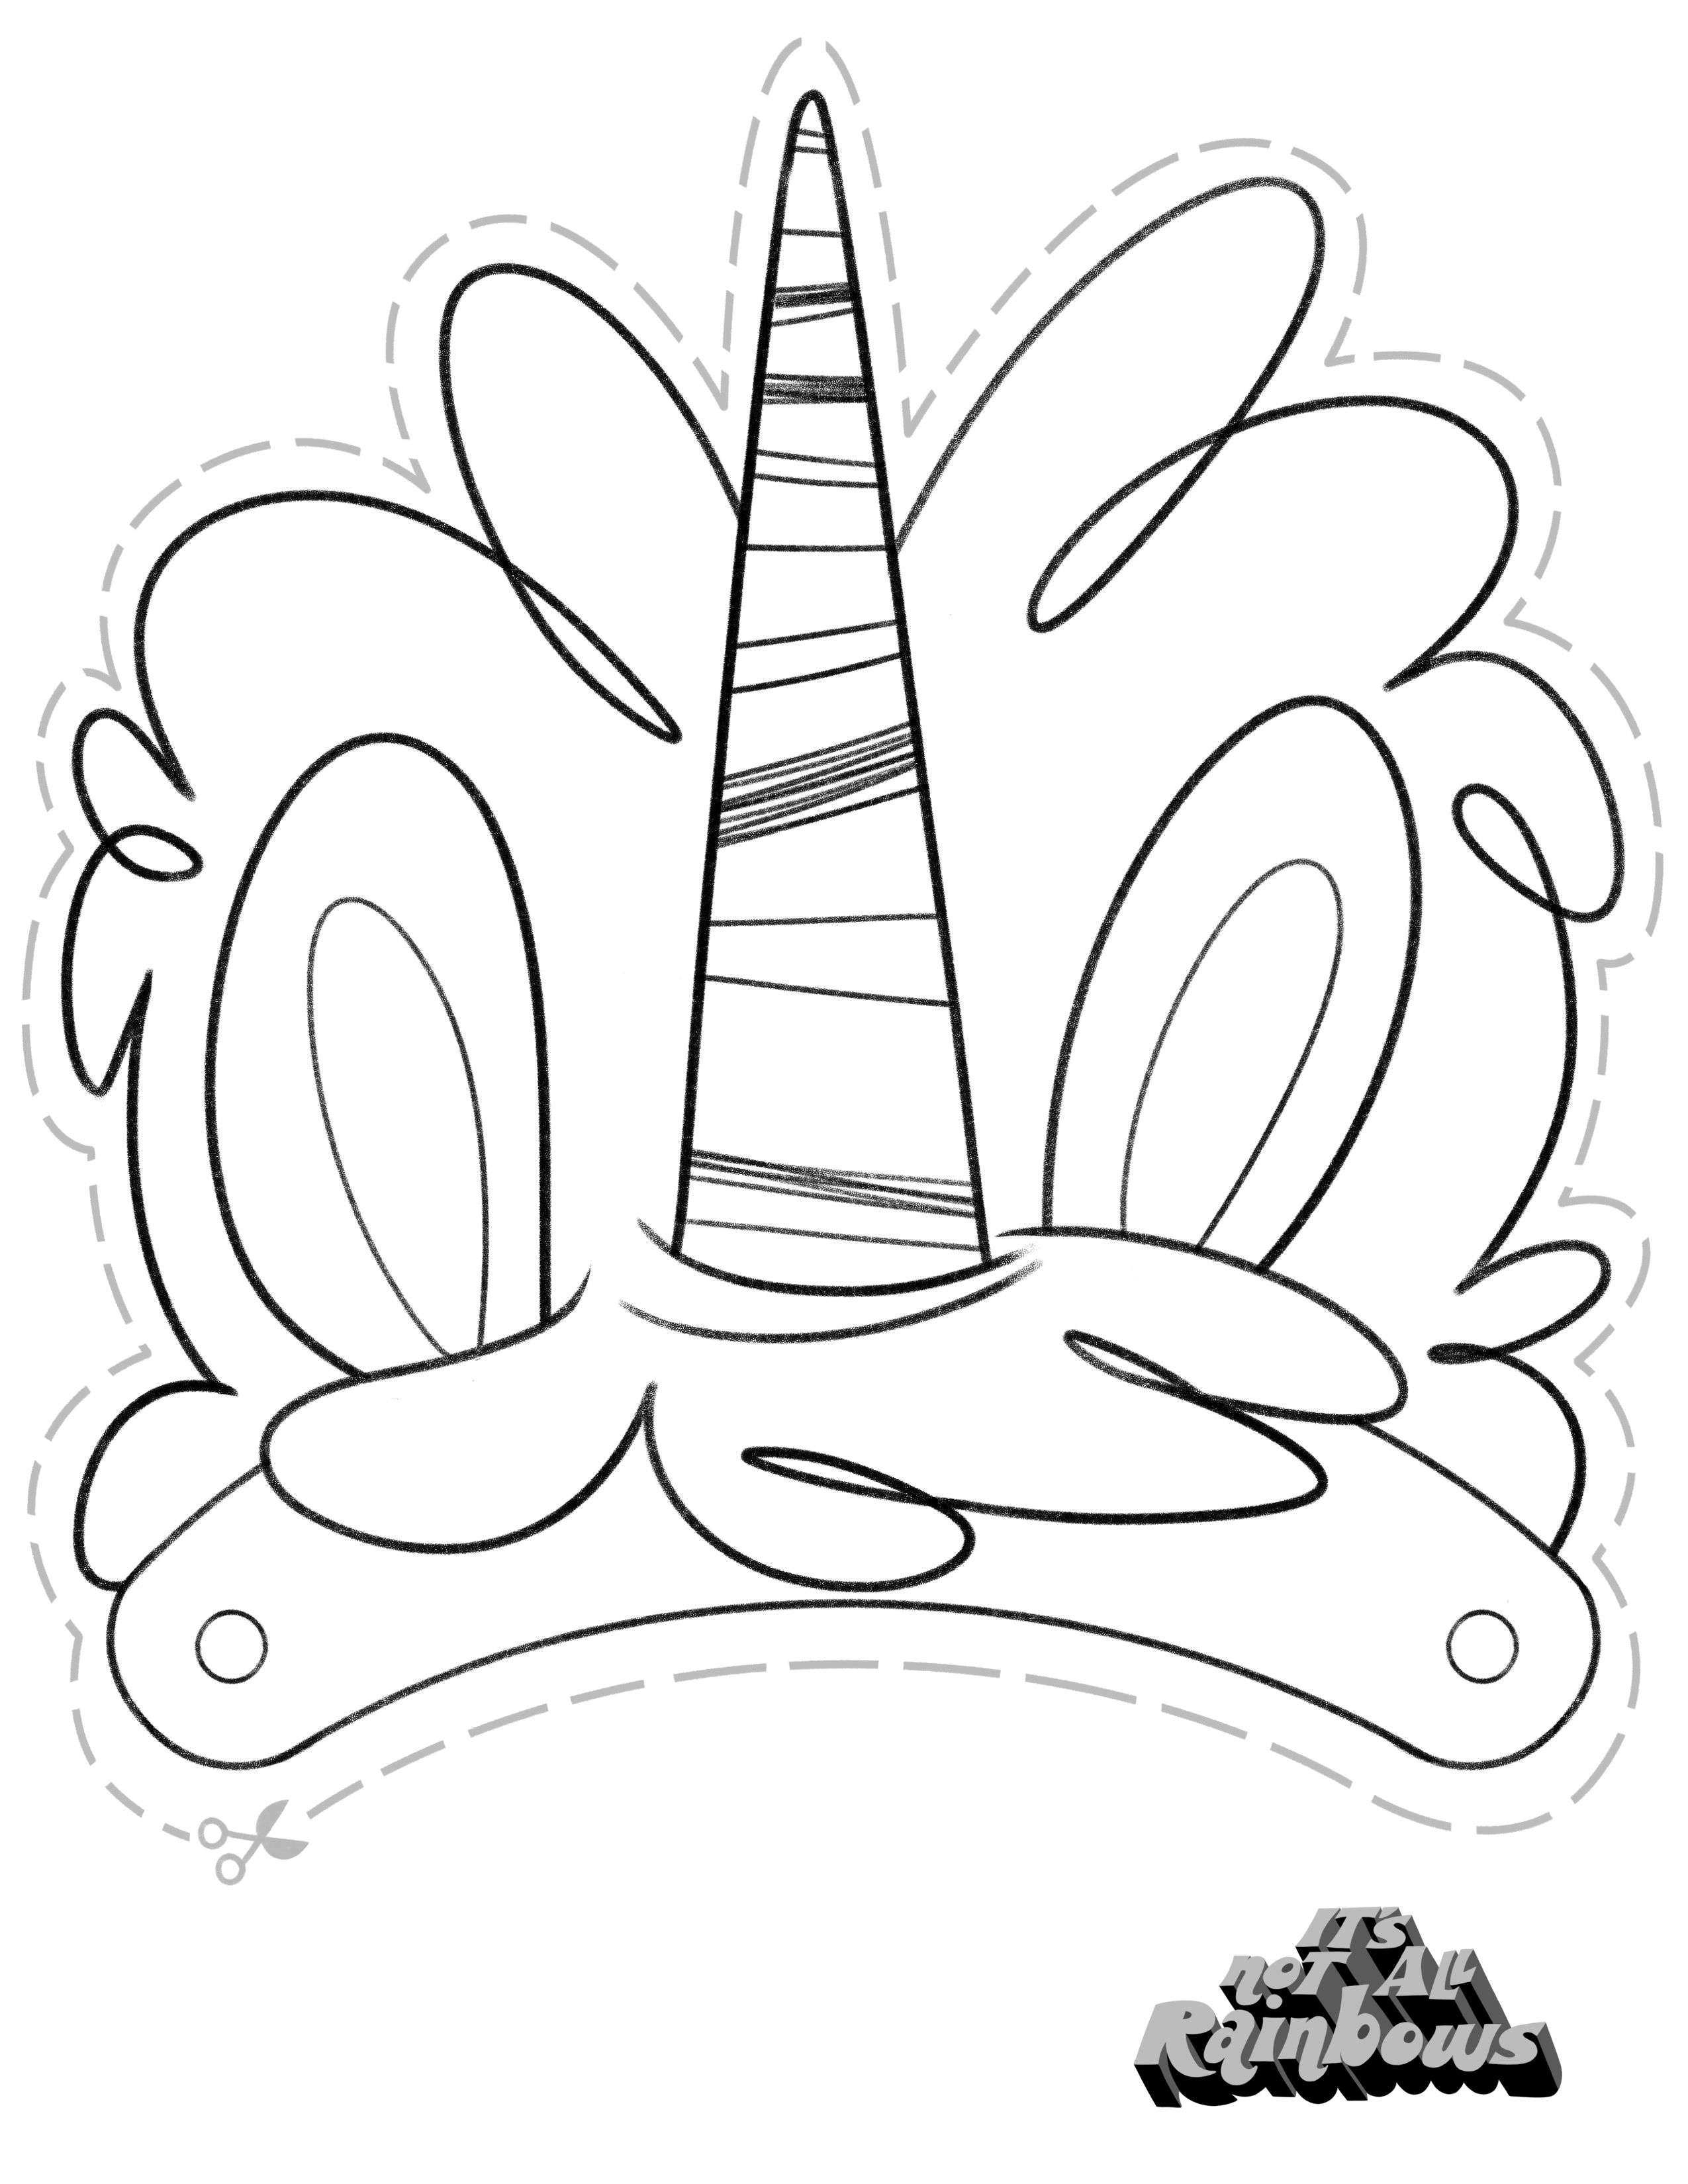 Coloring Unicorn Cake Coloring Pages Allow Kids To Accompany Their Favorite Characters On An A Unicorn Coloring Pages Coloring Pages Birthday Coloring Pages